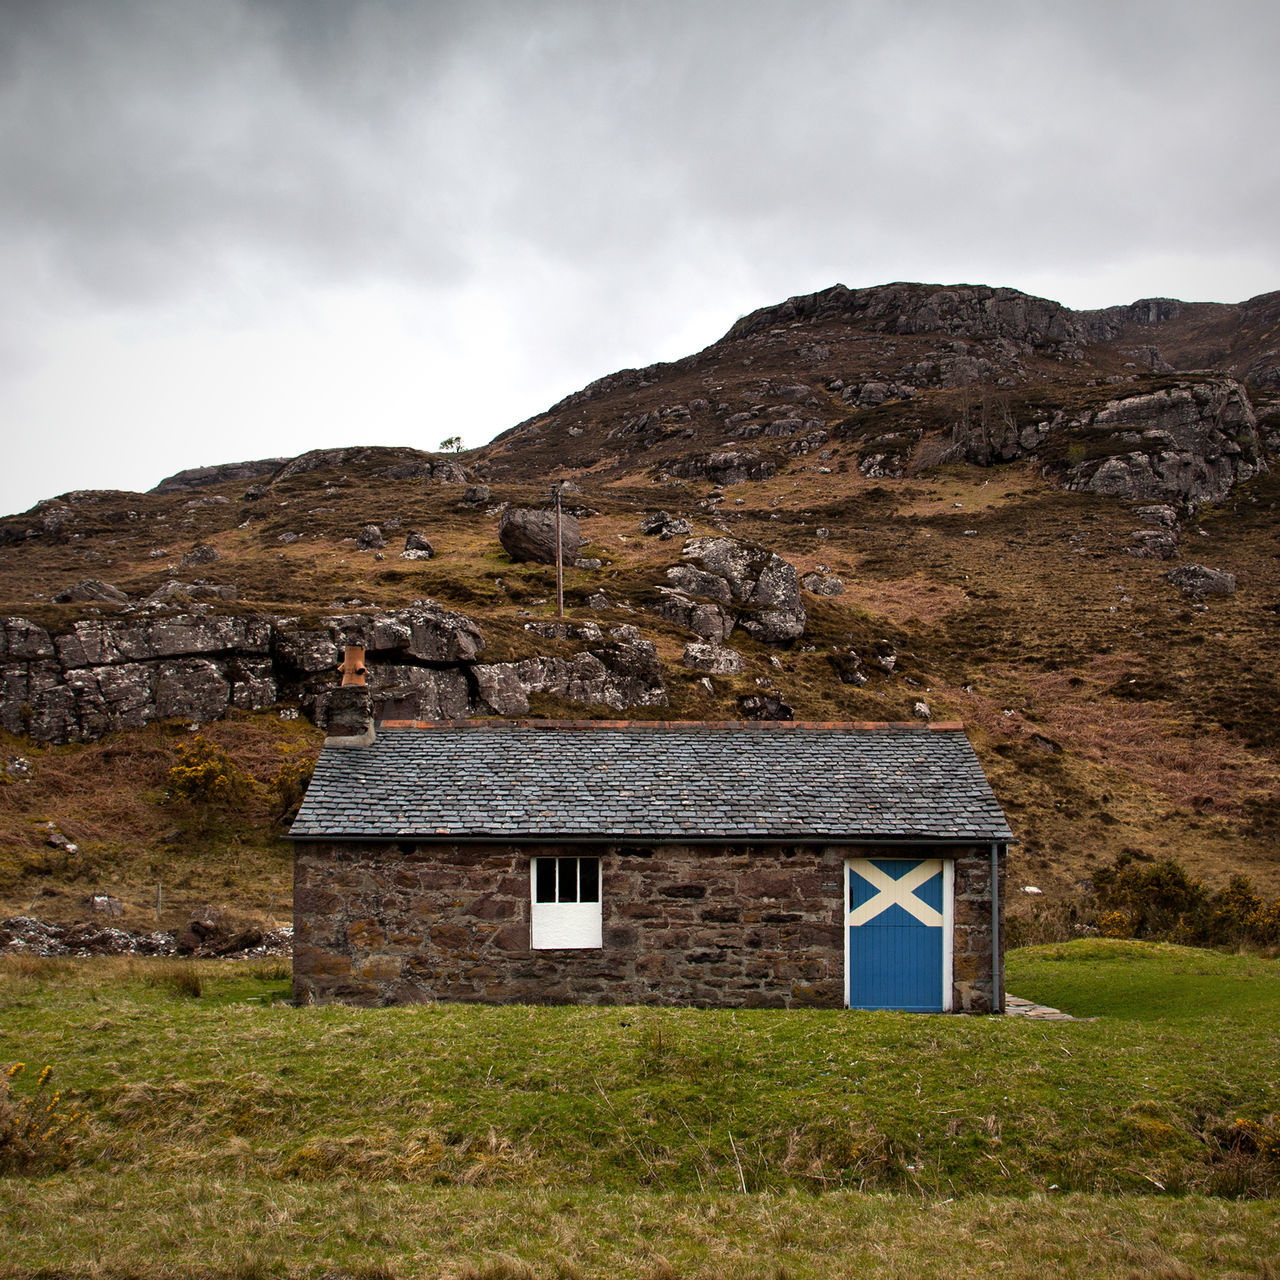 Bothy Clouds Dundonnell Dwelling Highlands Highlands Of Scotland Landscape No People Scotish Home Scotland Scottish Dwelling Scottish Flag Scottish Highlands Scottish House Sky West Coast West Coast Scotland